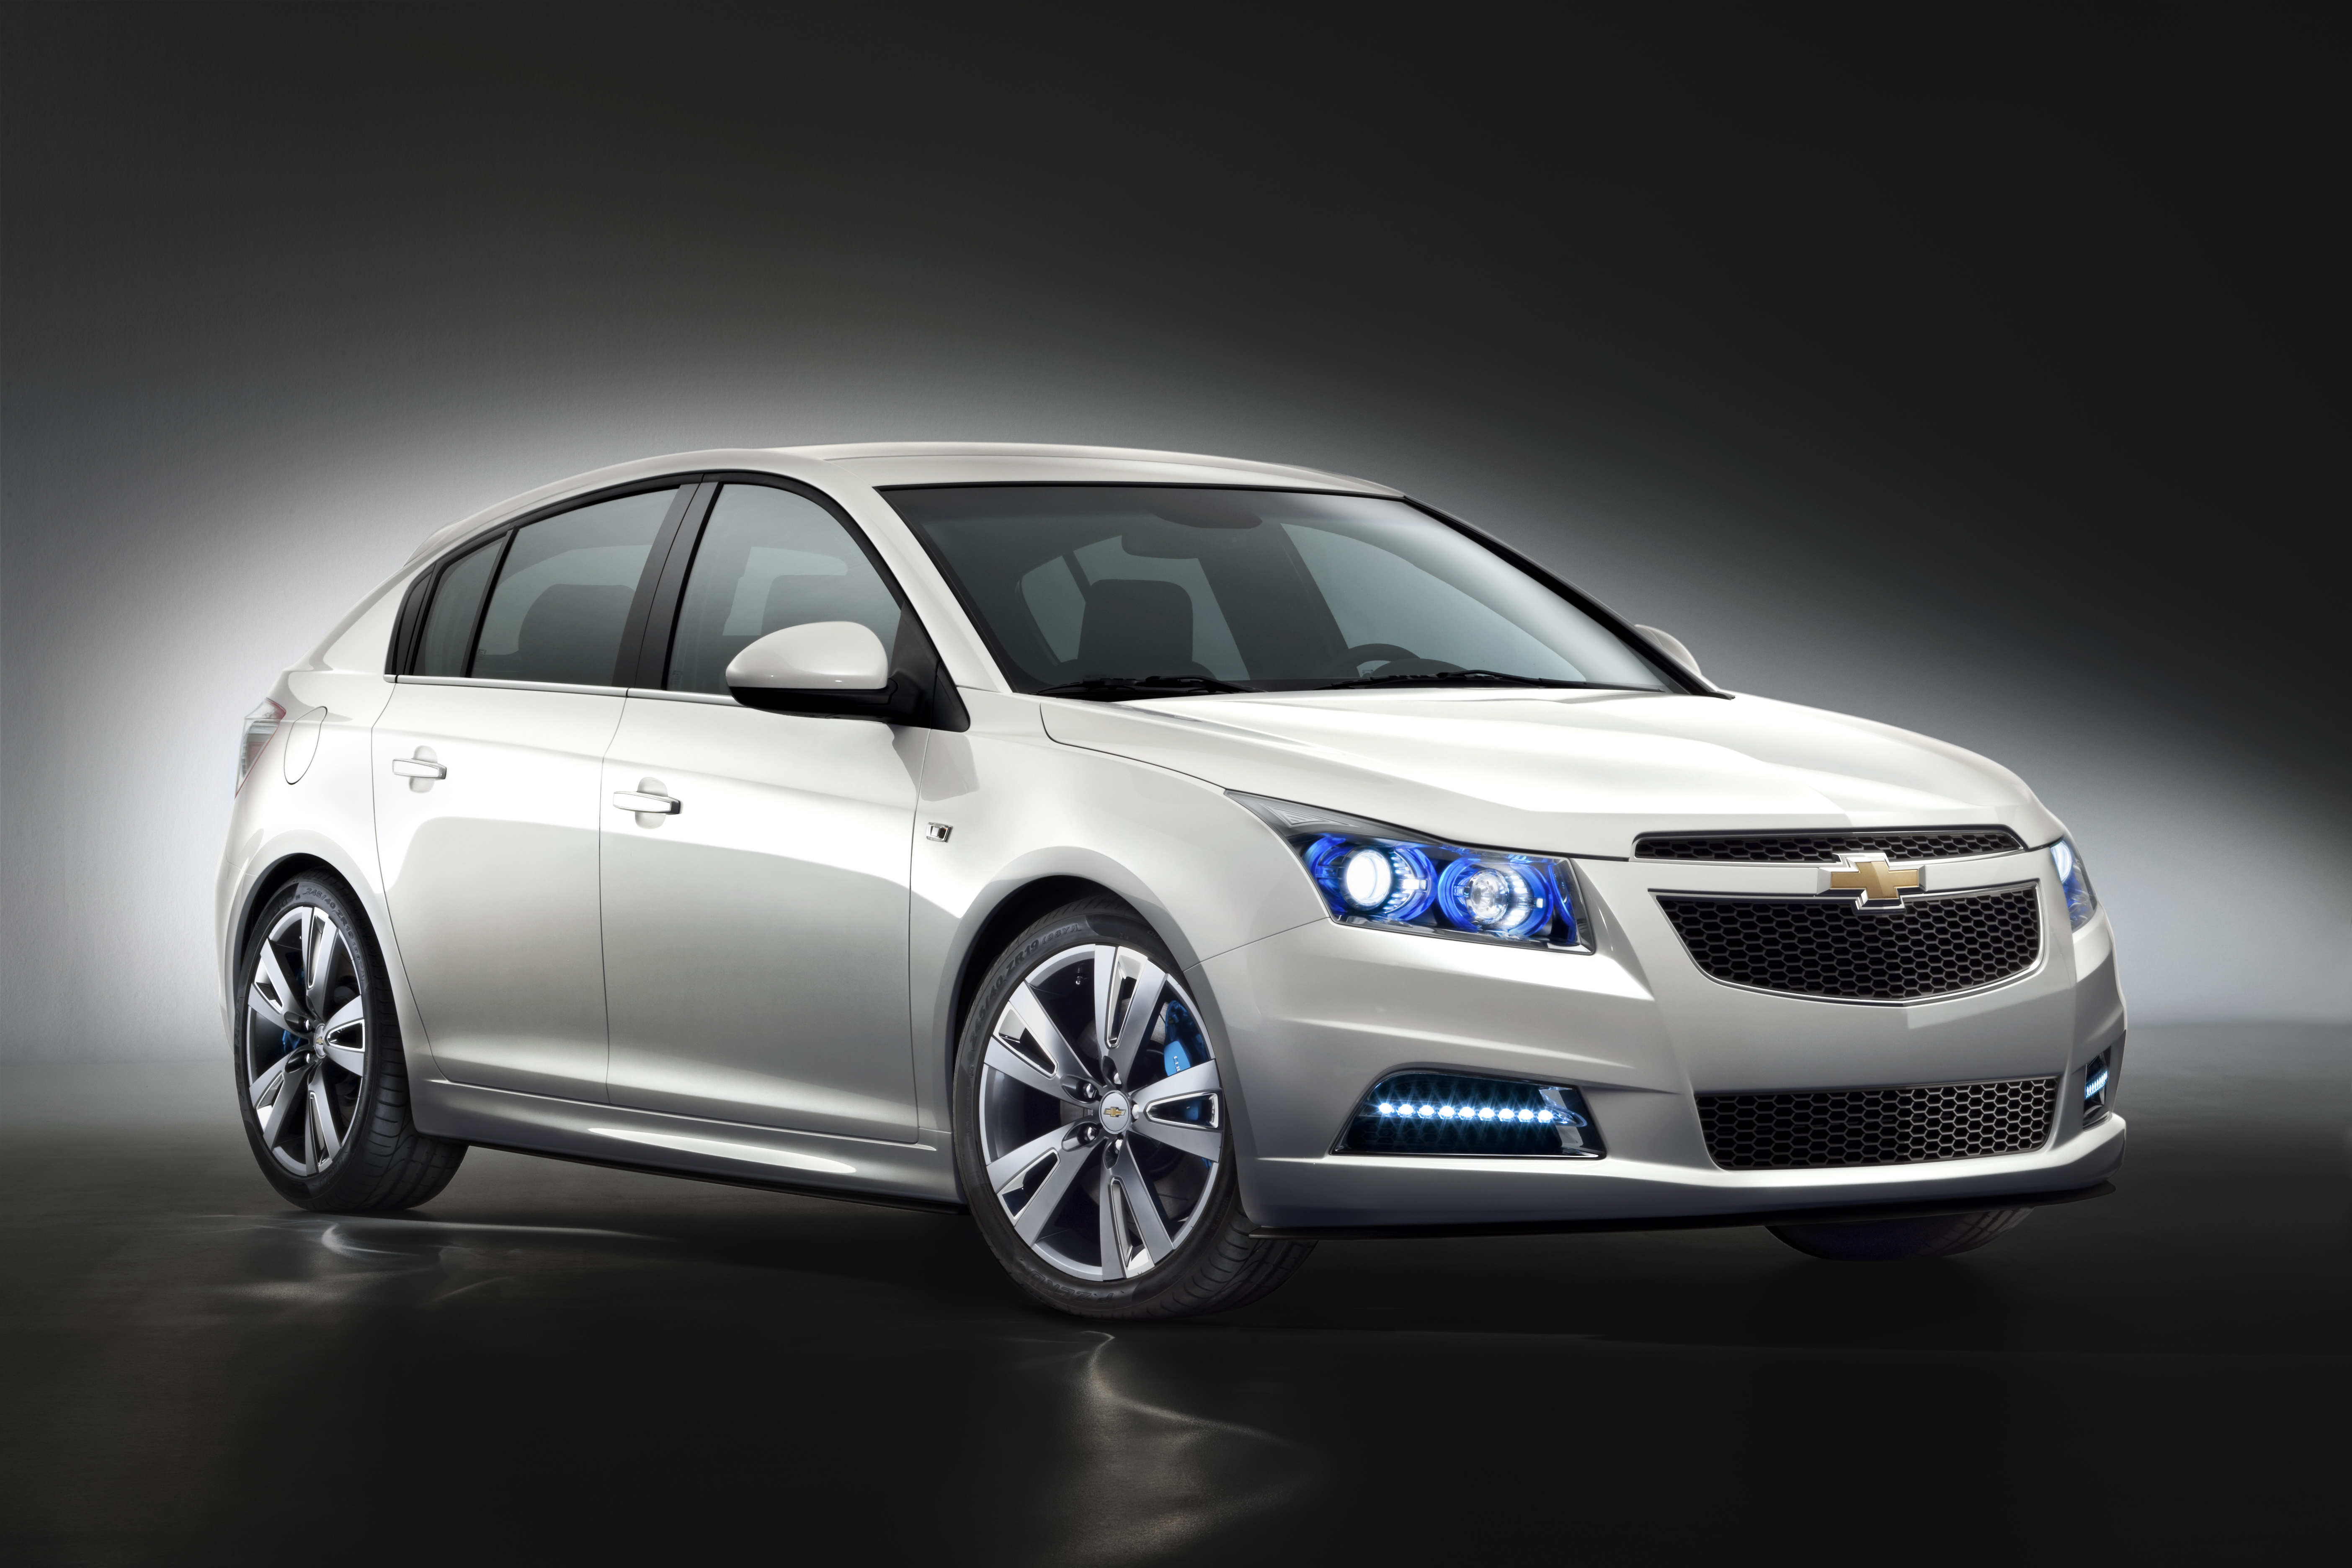 Chevrolet Cruze Hachback Wallpapers Download